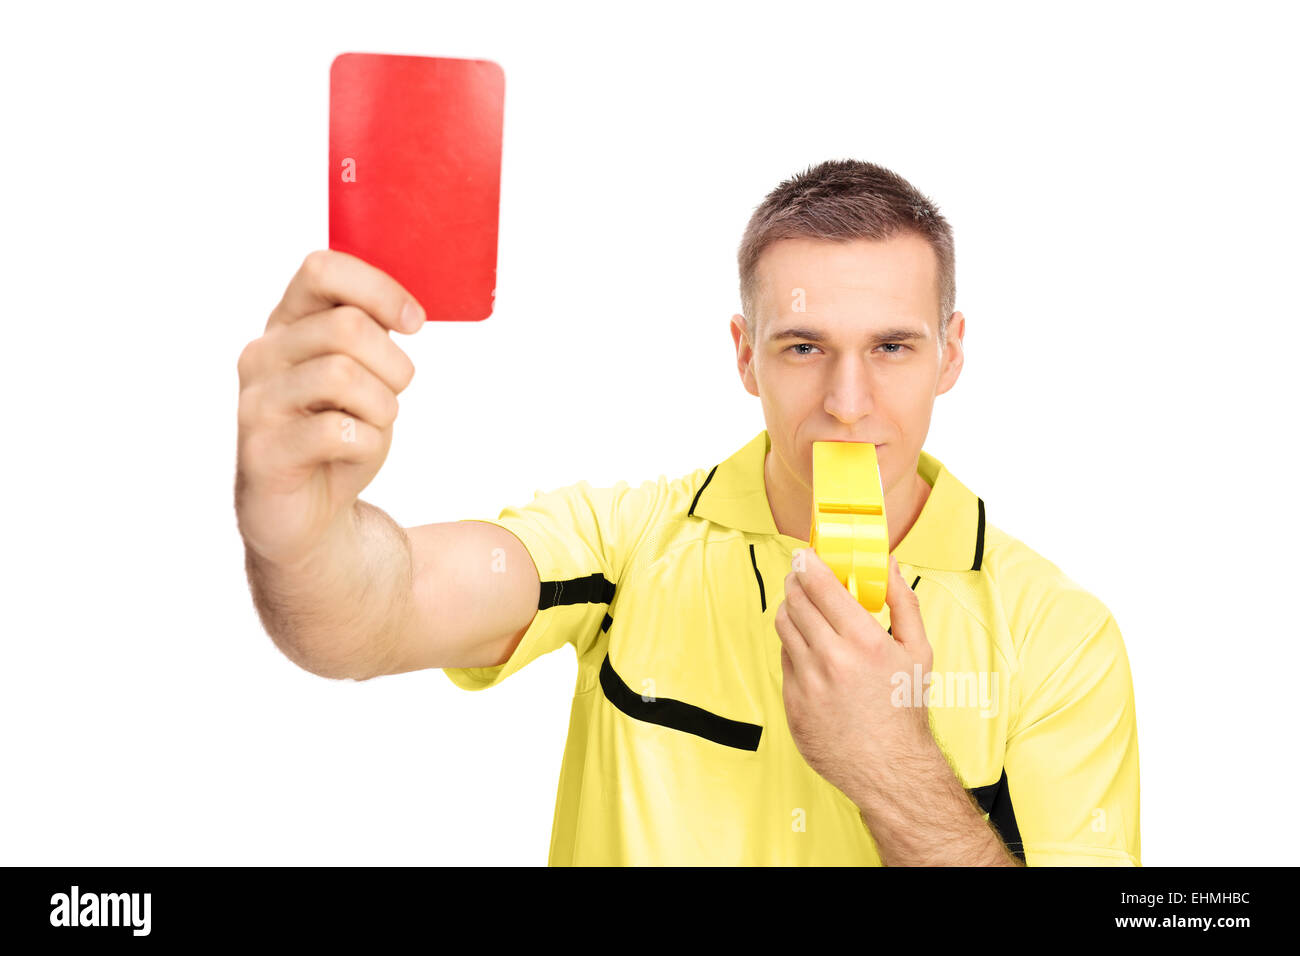 Referee showing red card and blowing huge whistle isolated on white background - Stock Image